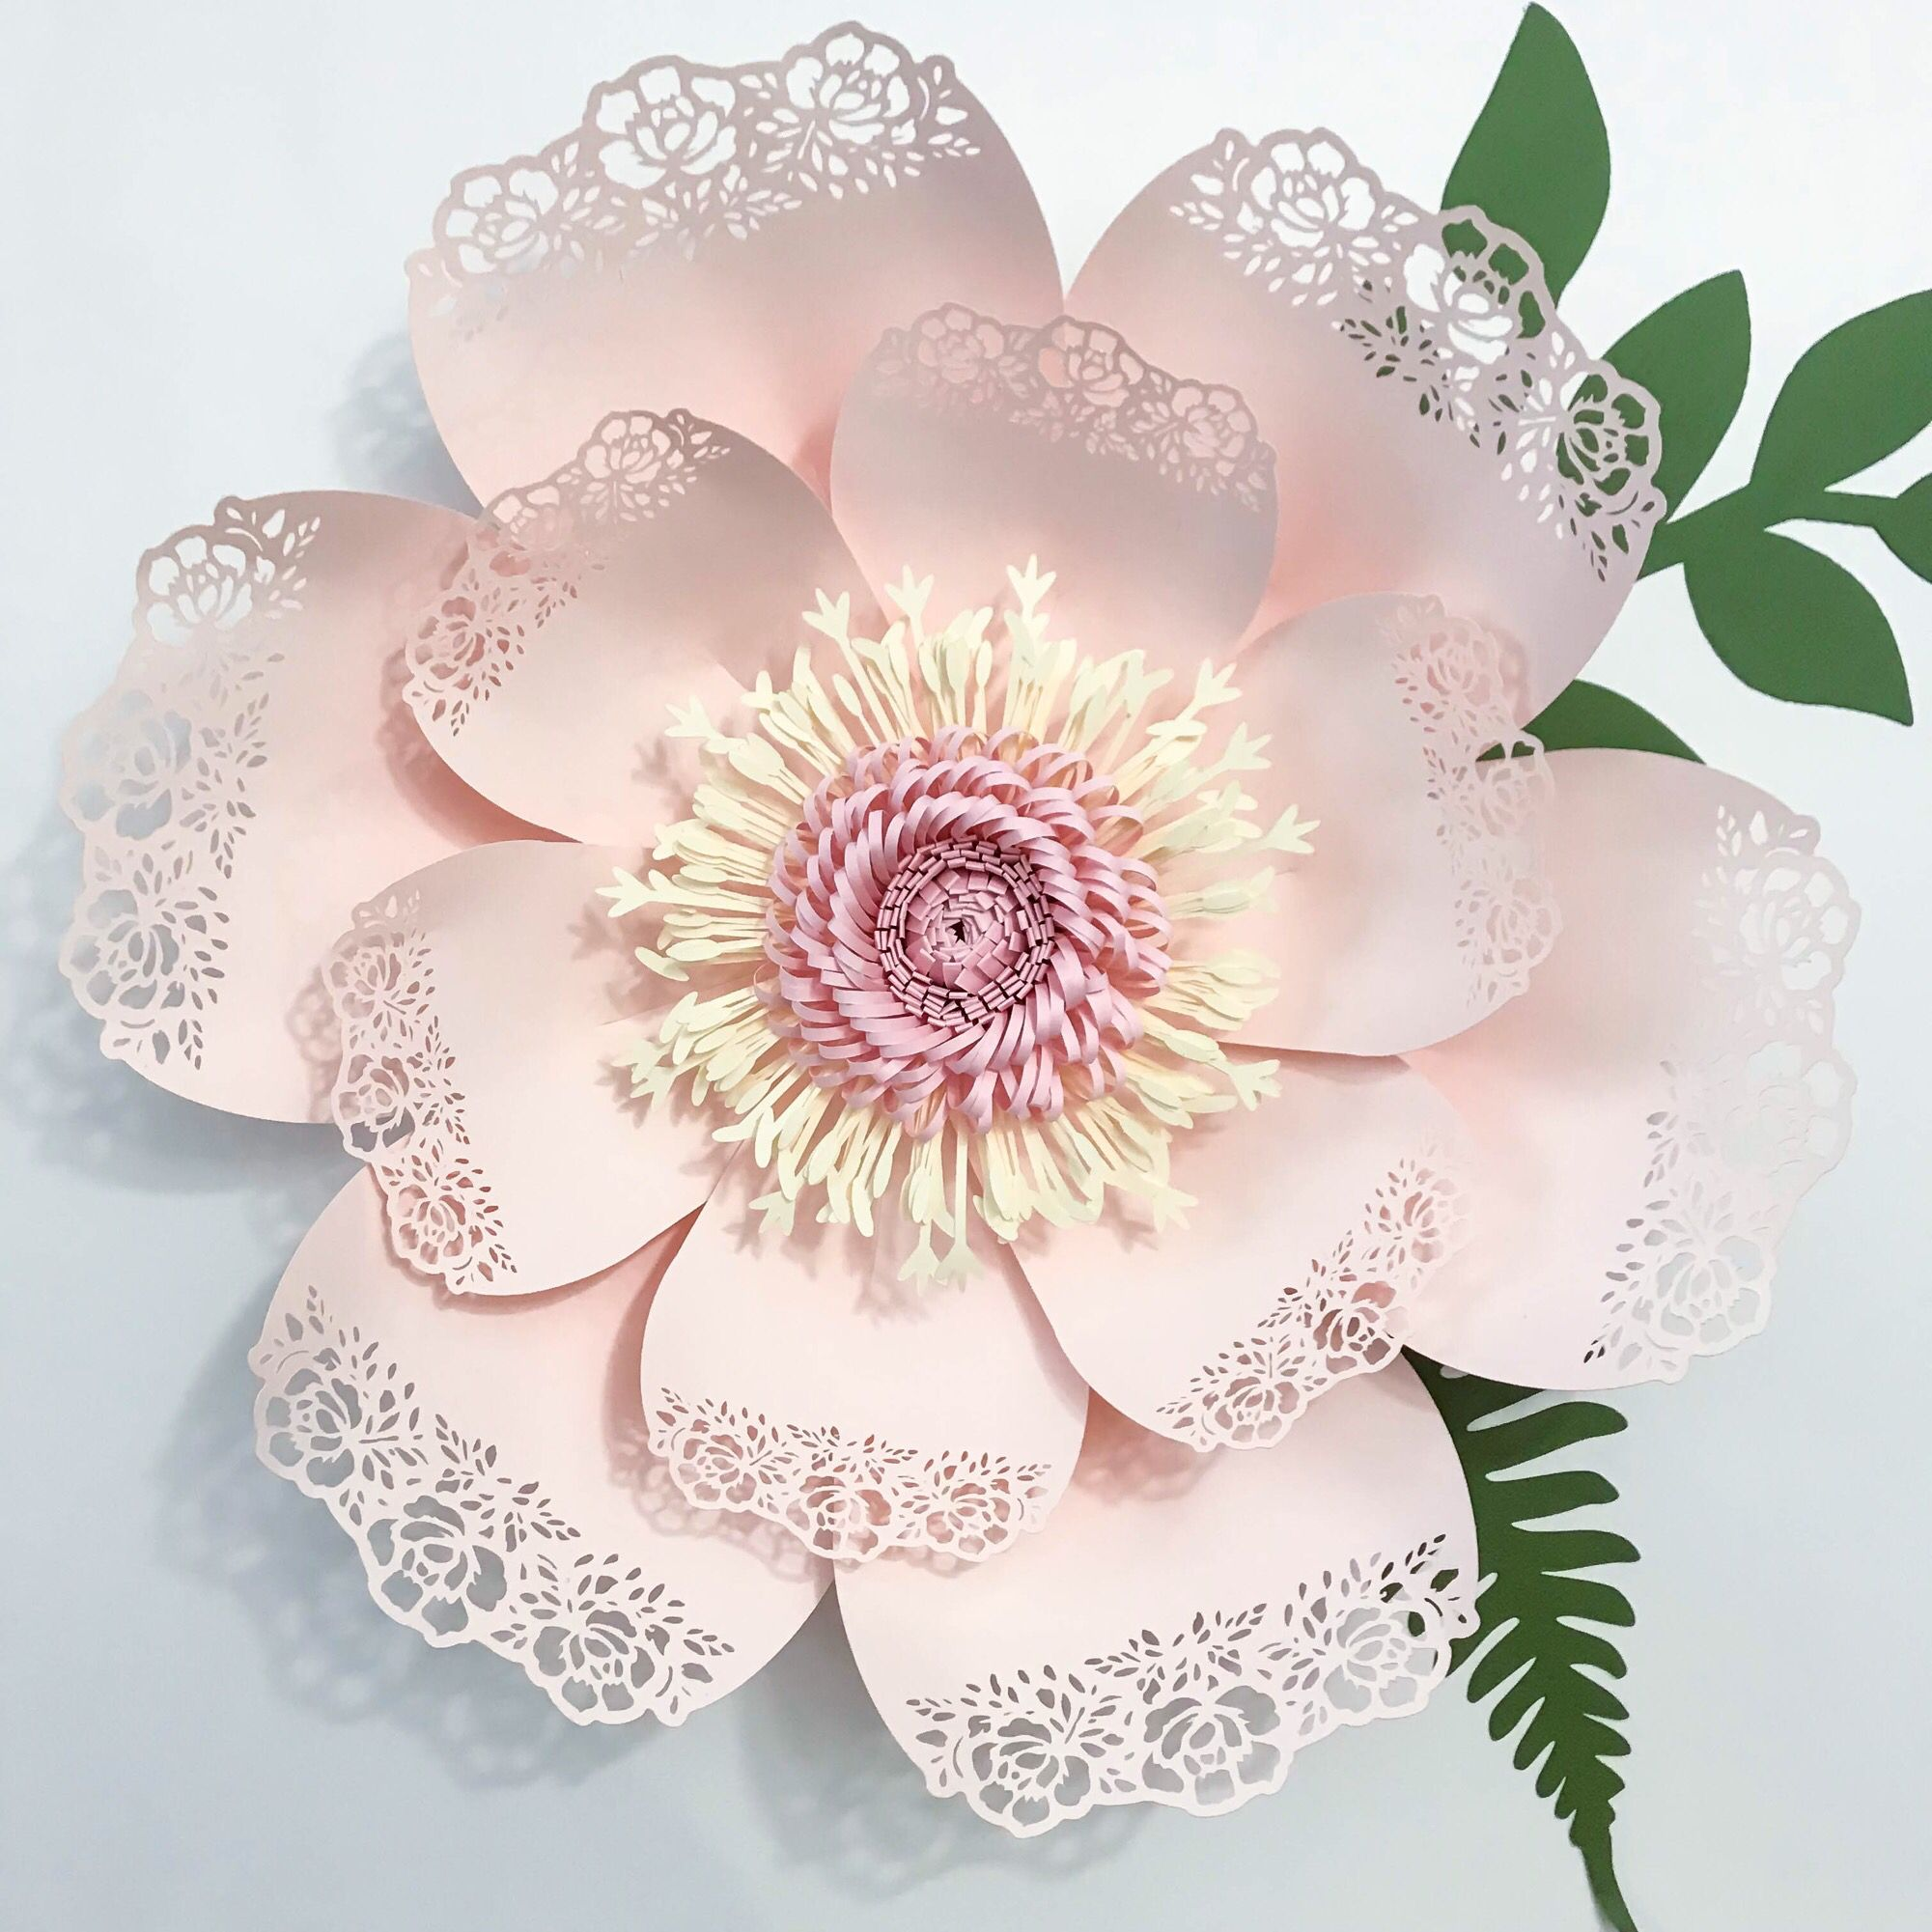 Lace Petal No 5 A Paper Flower Template Made By The Crafty